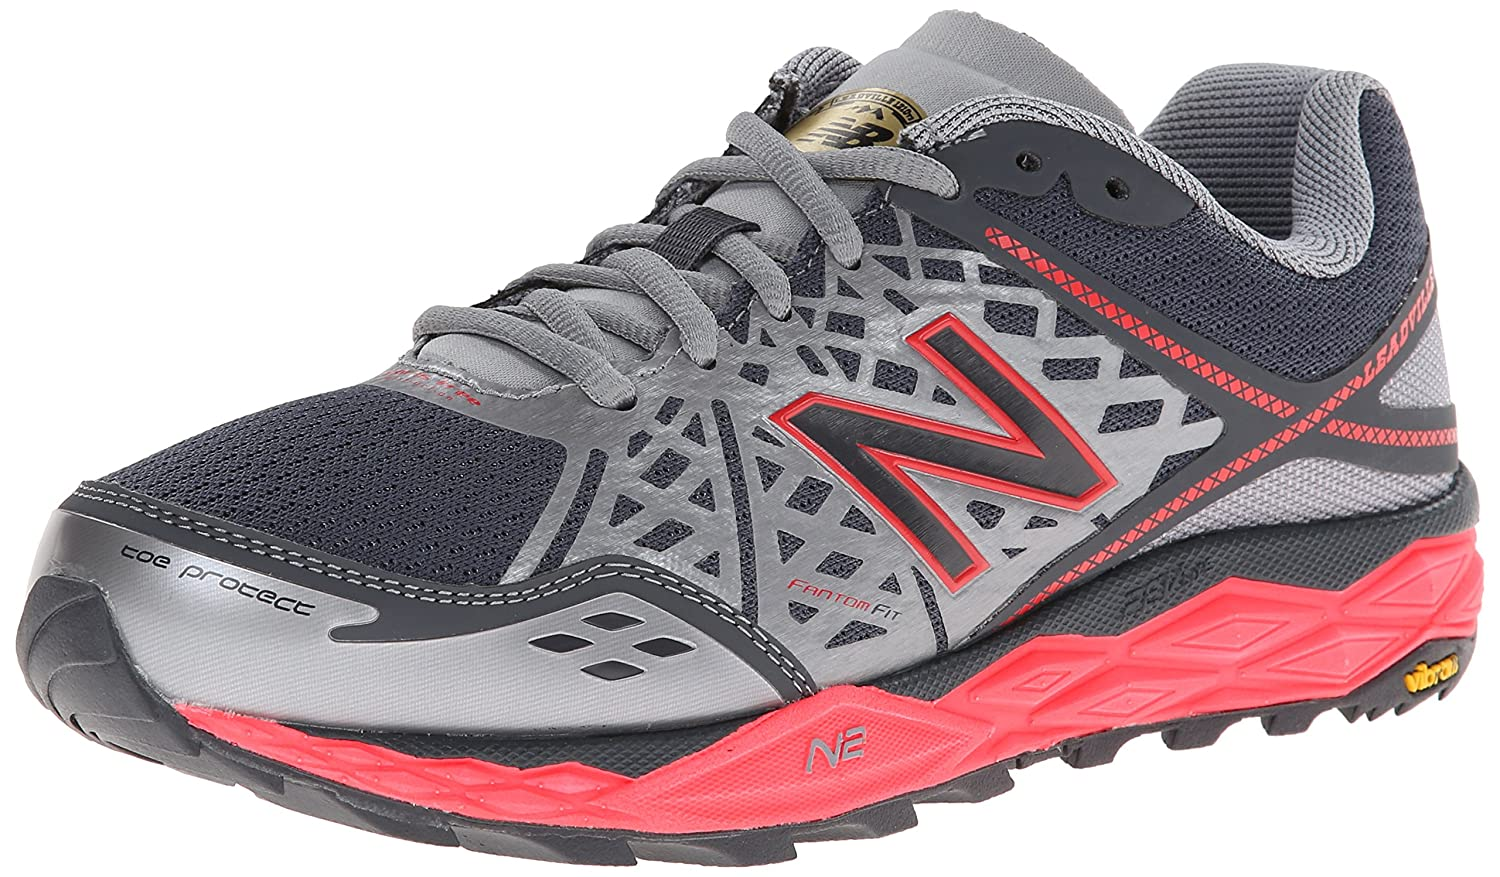 New Balance Women's WT1210 Trail Shoe B00KQ568VE 5.5 B(M) US|Grey/Pink